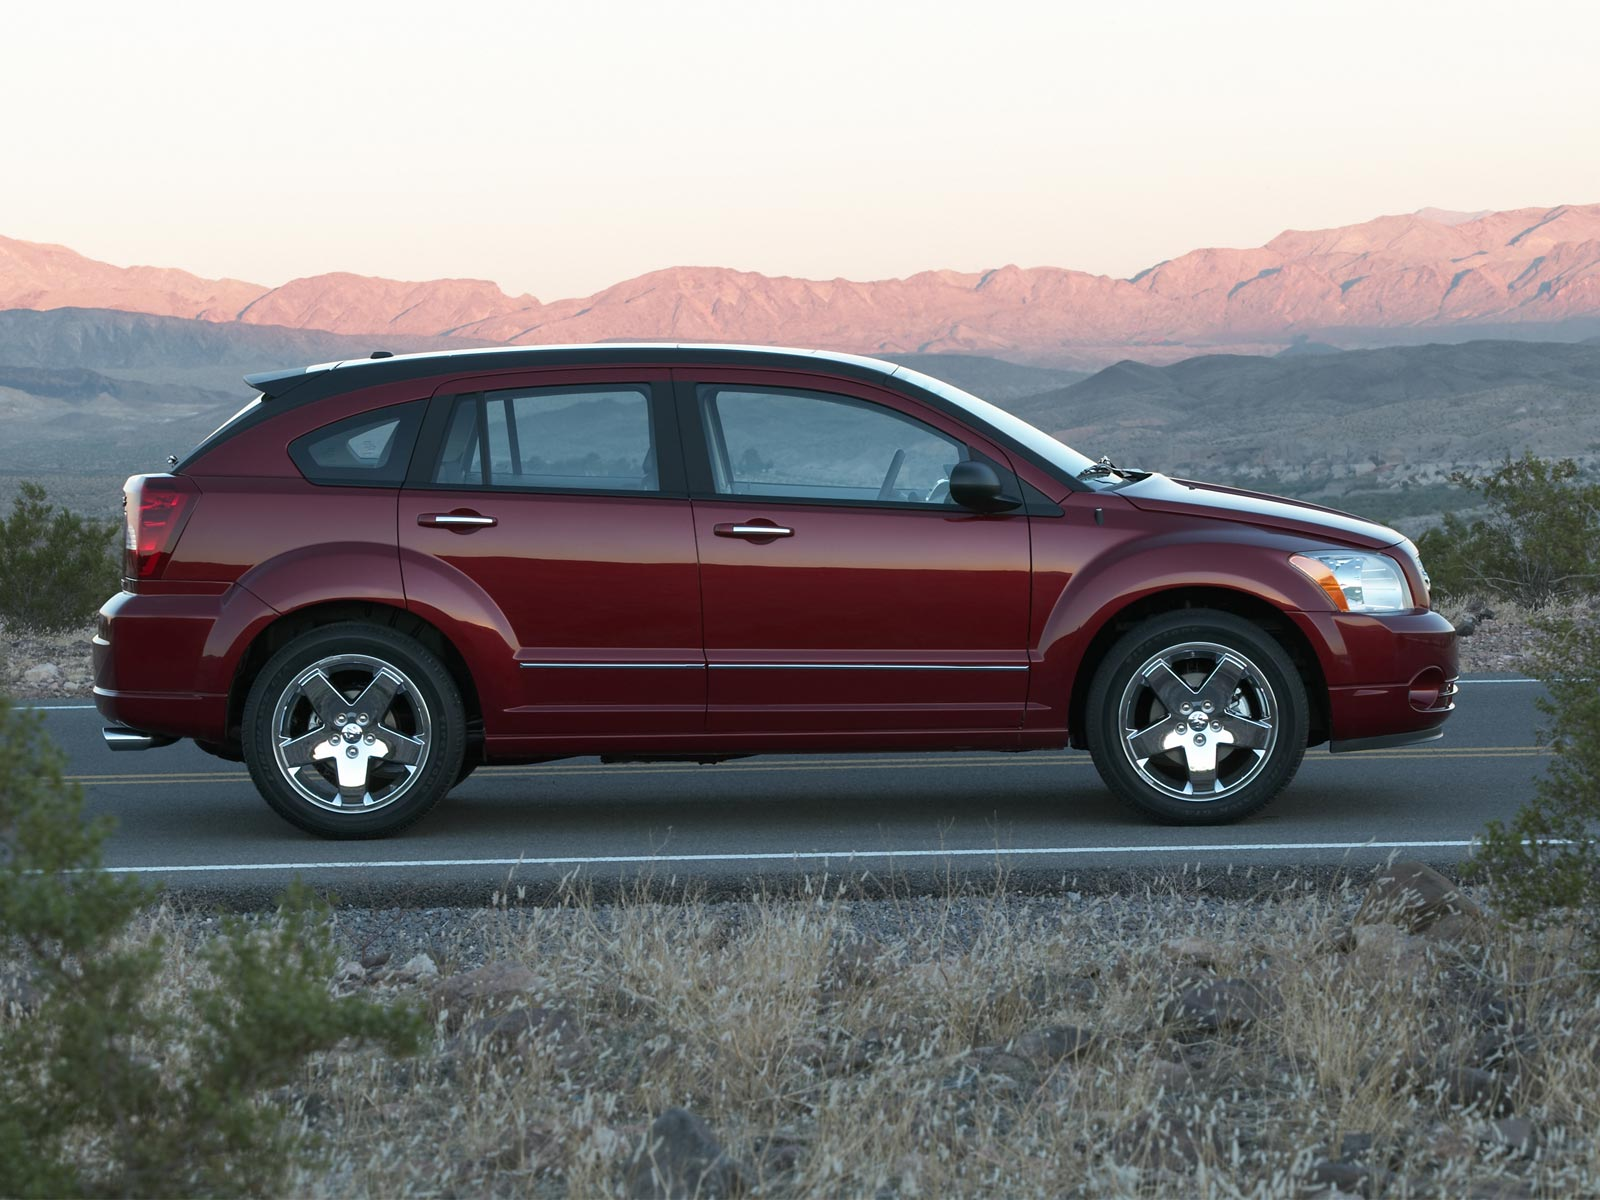 2006 Dodge Caliber Mpv 5-door